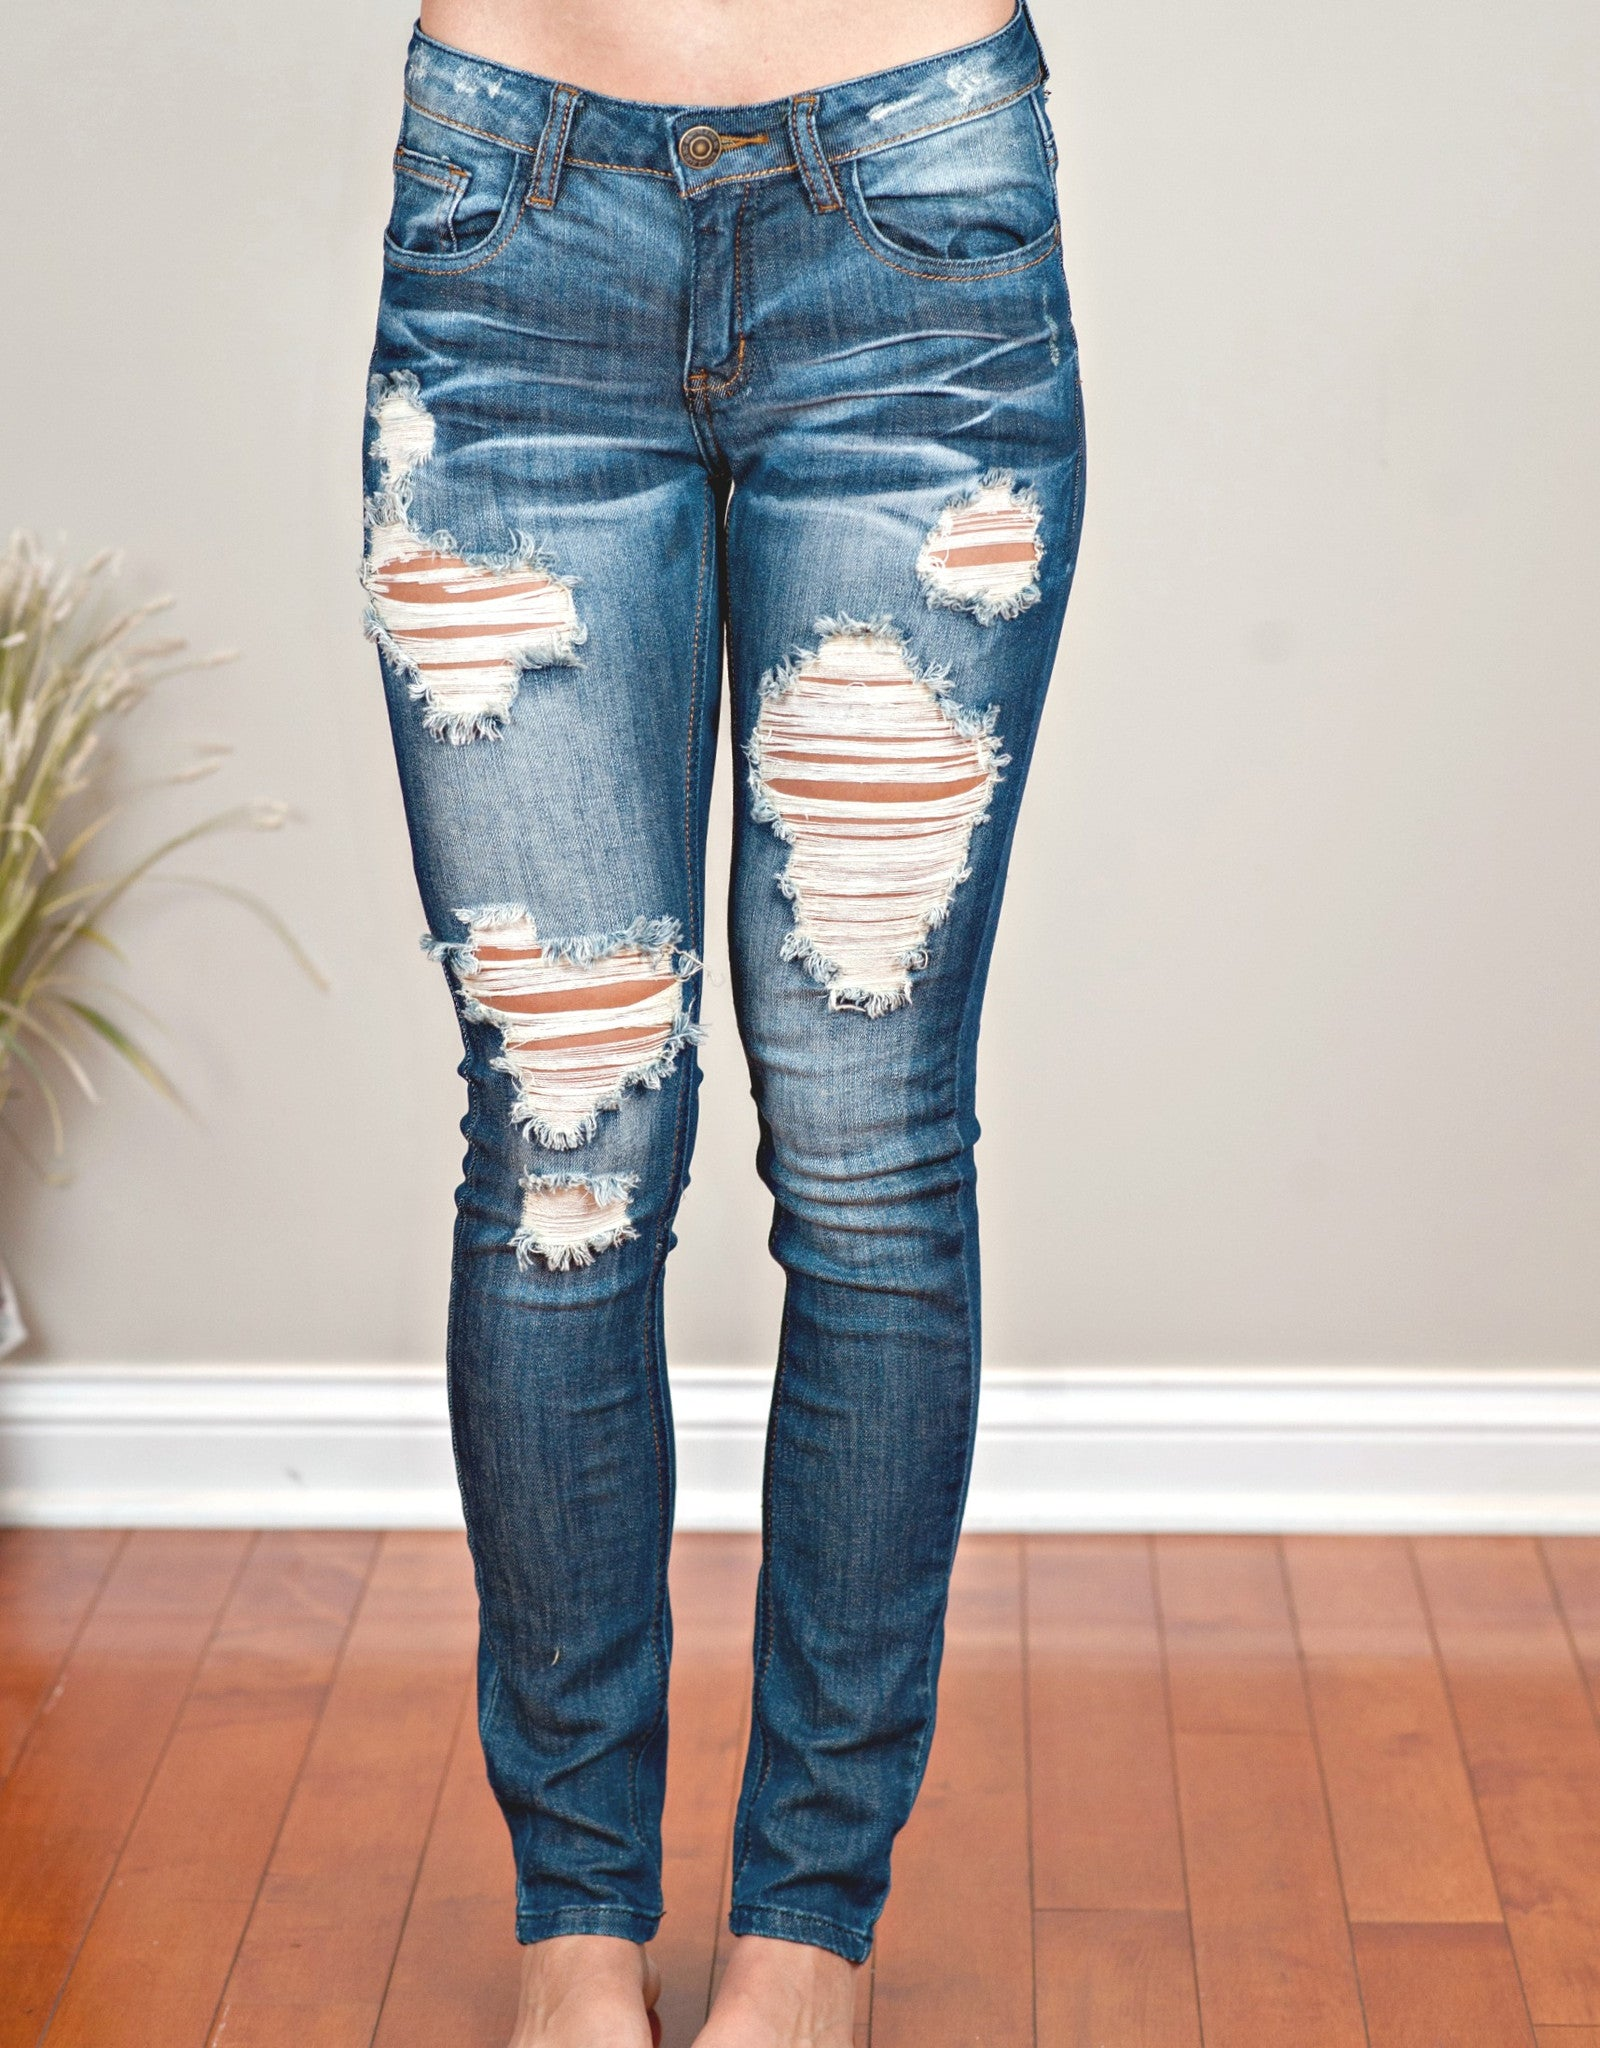 MACHINE Distressed Skinny Jeans: Lola Wash